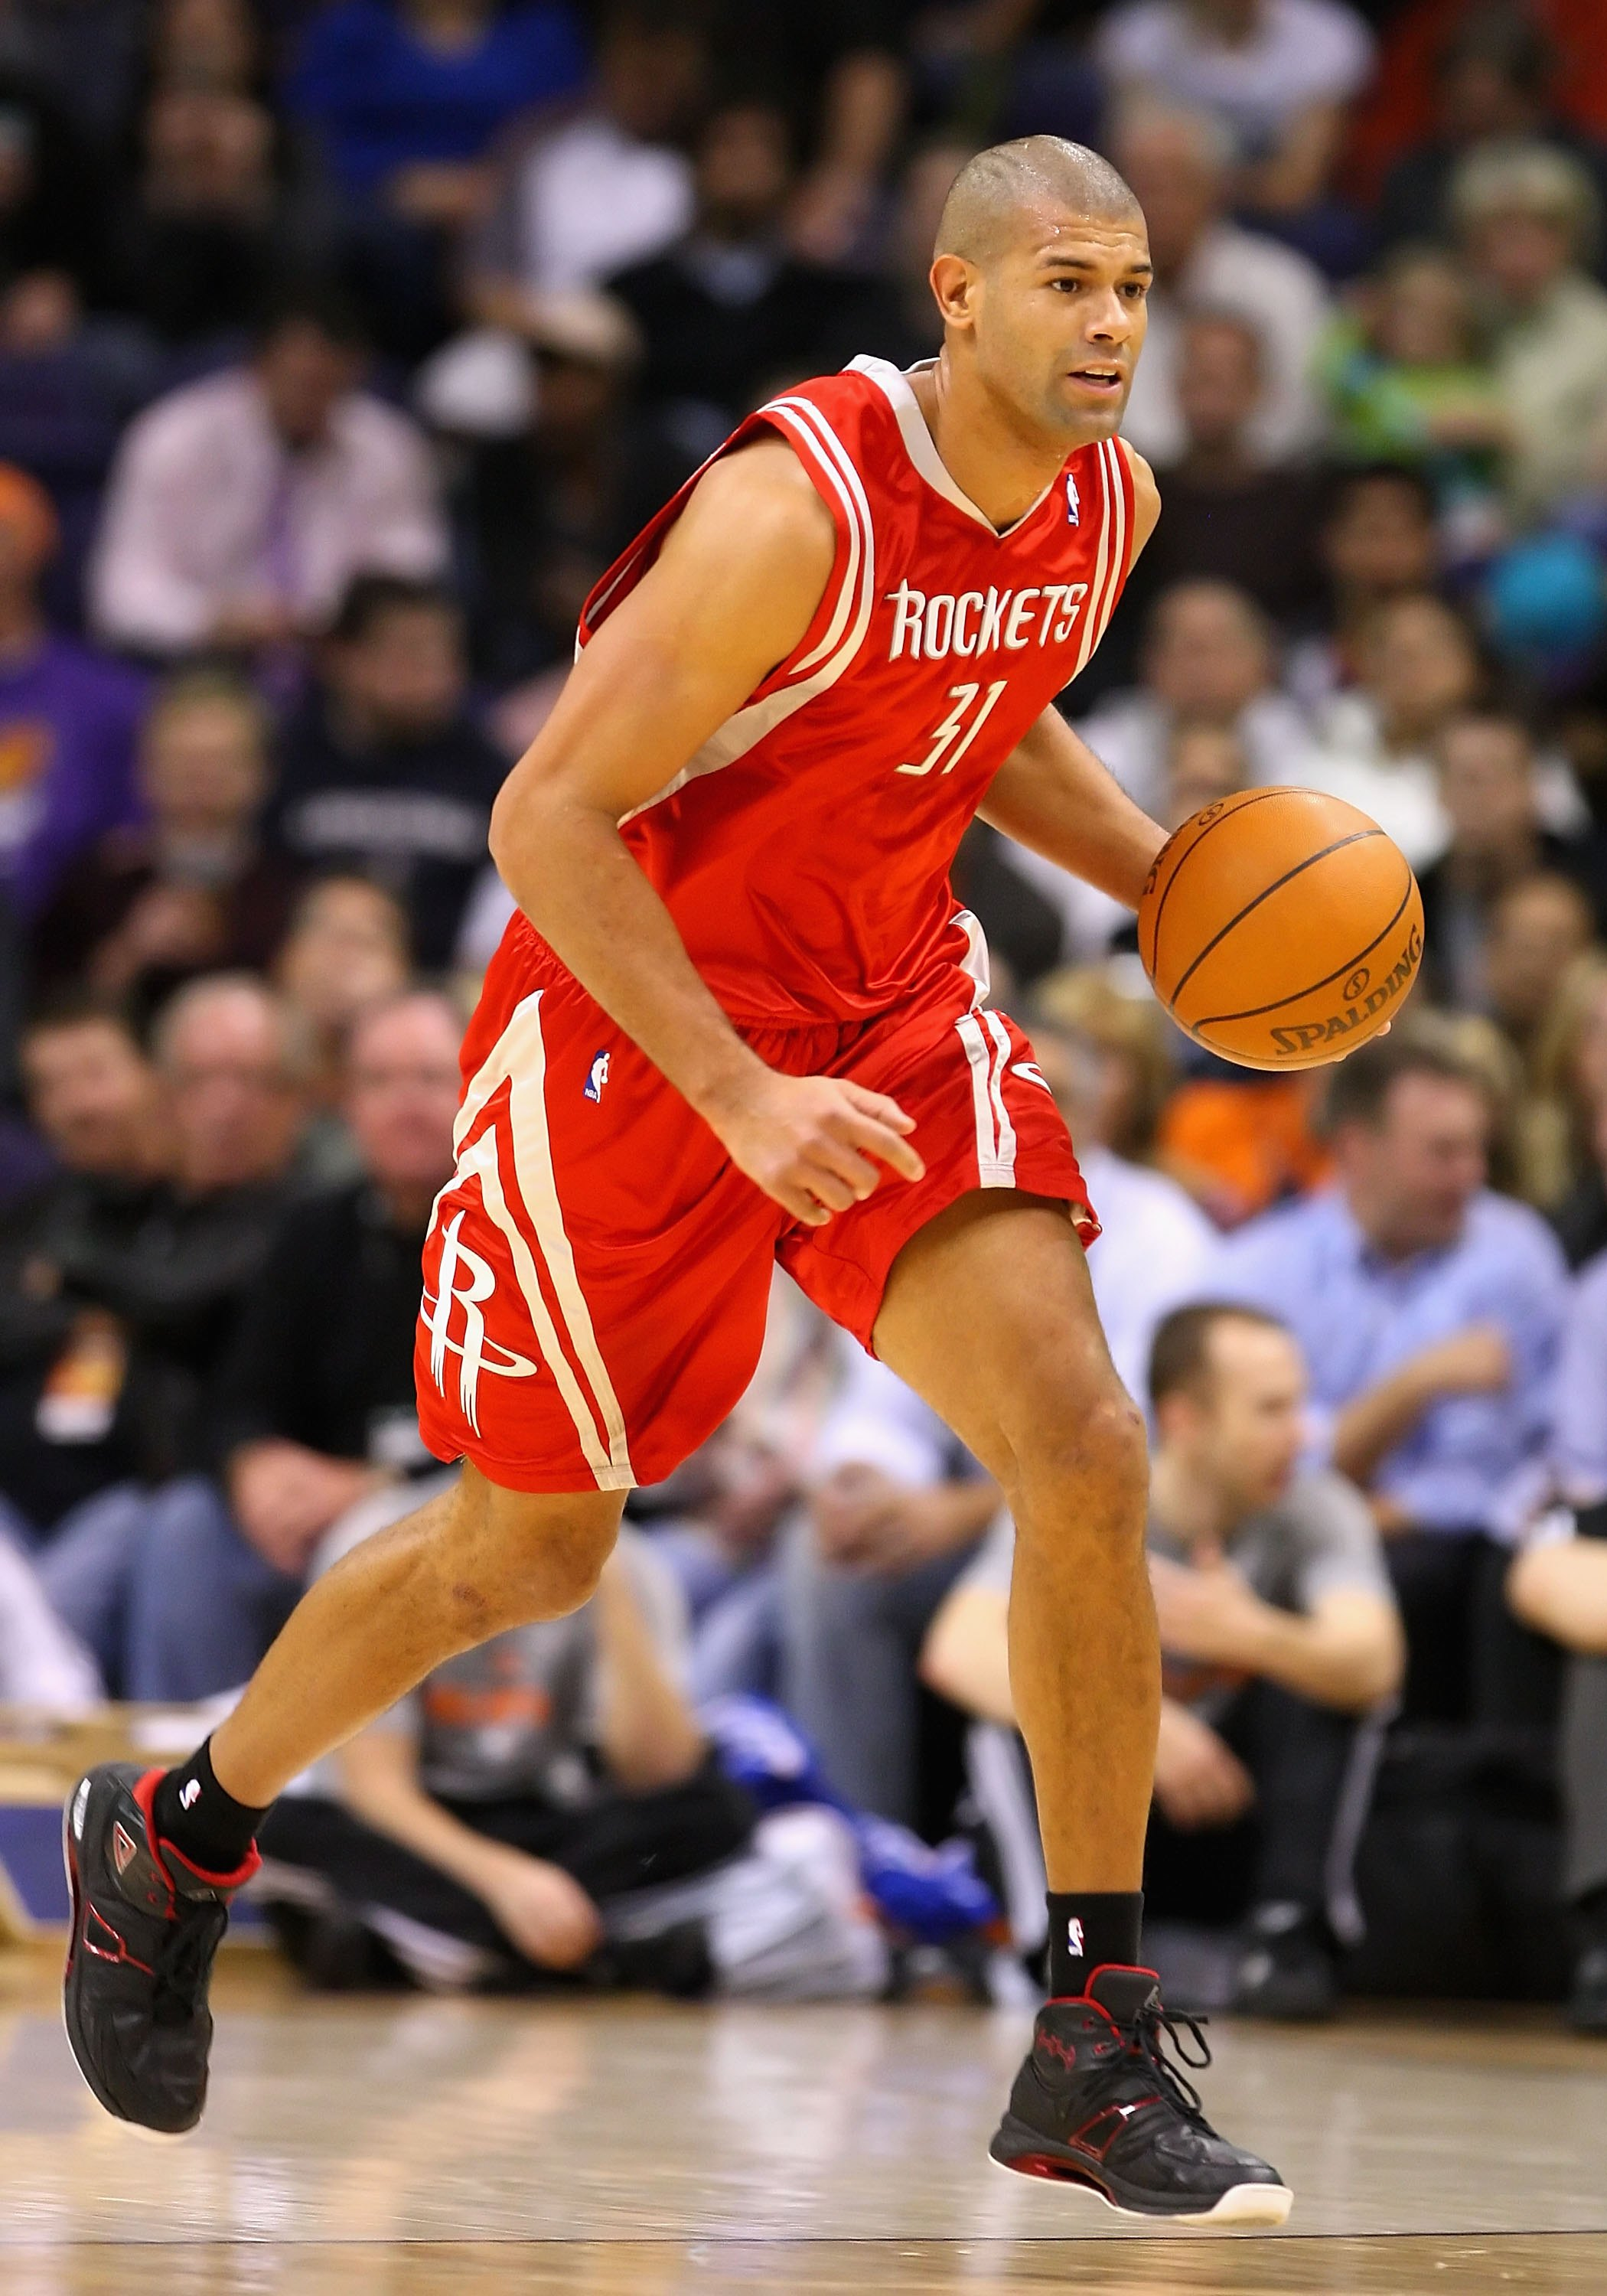 PHOENIX - JANUARY 06:  Shane Battier #31 of the Houston Rockets handles the ball during the NBA game against the Phoenix Suns at US Airways Center on January 6, 2010 in Phoenix, Arizona. The Suns defeated the Rockets 118-110.  NOTE TO USER: User expressly